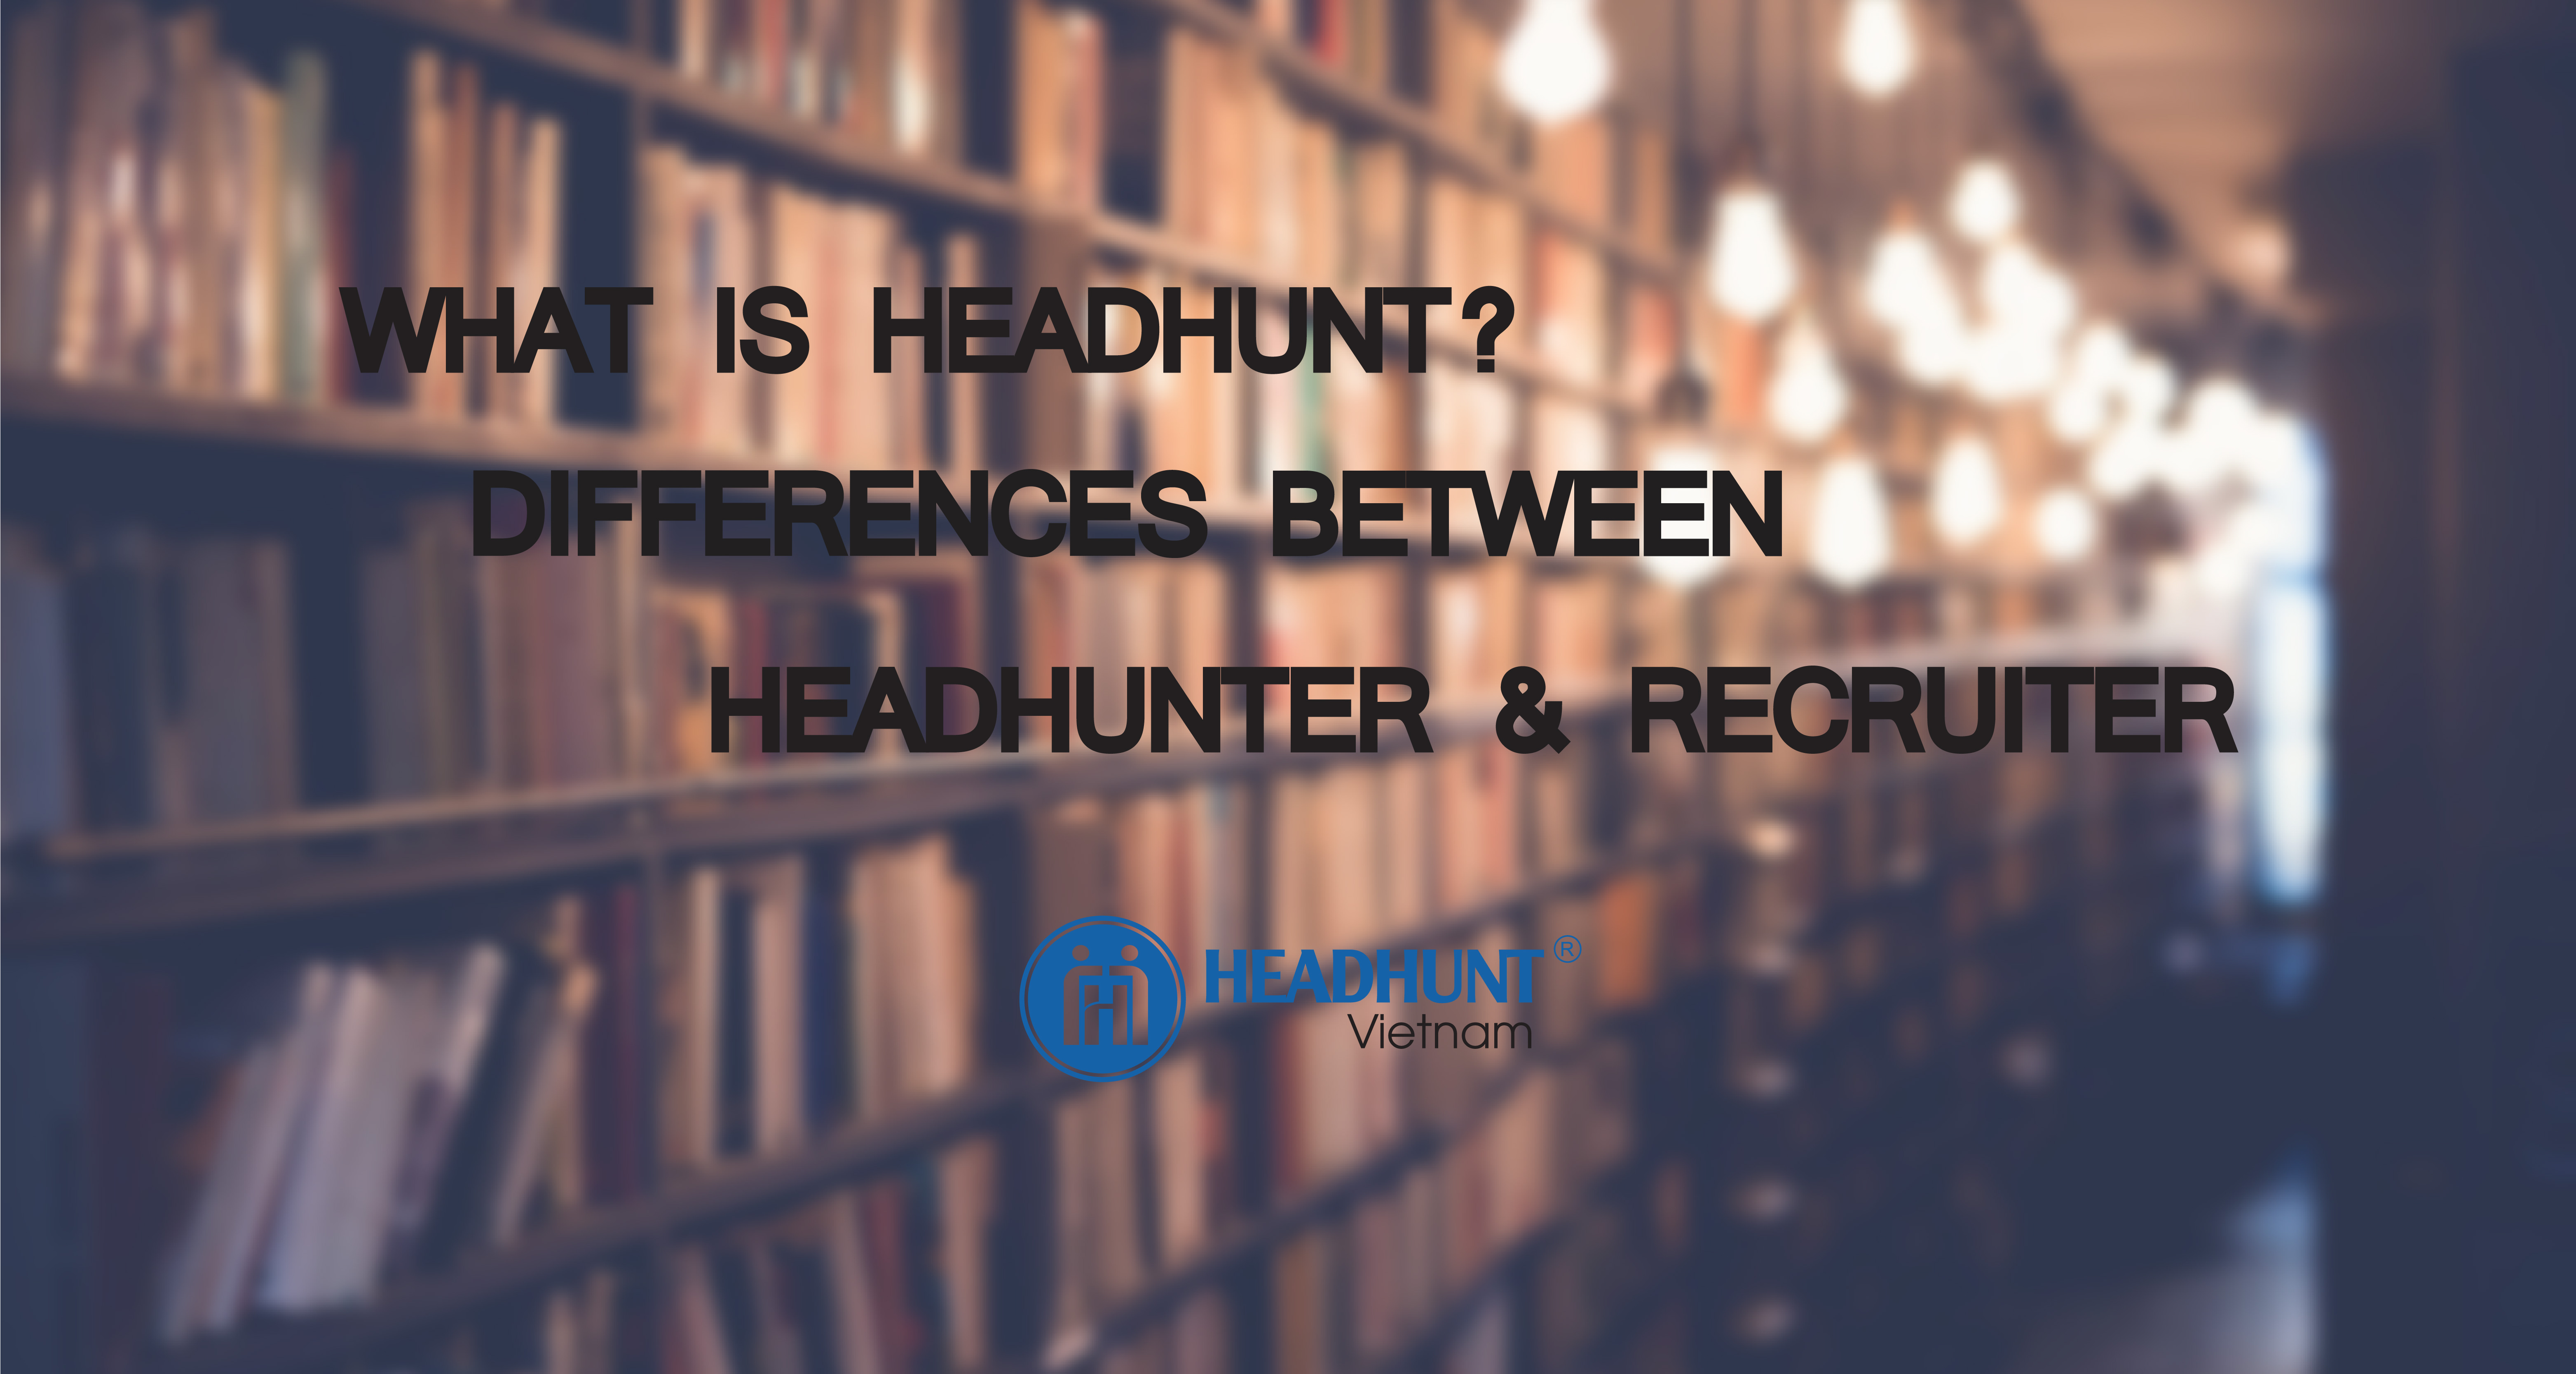 What is Headhunt? Differences between Headhunter / Recruiter